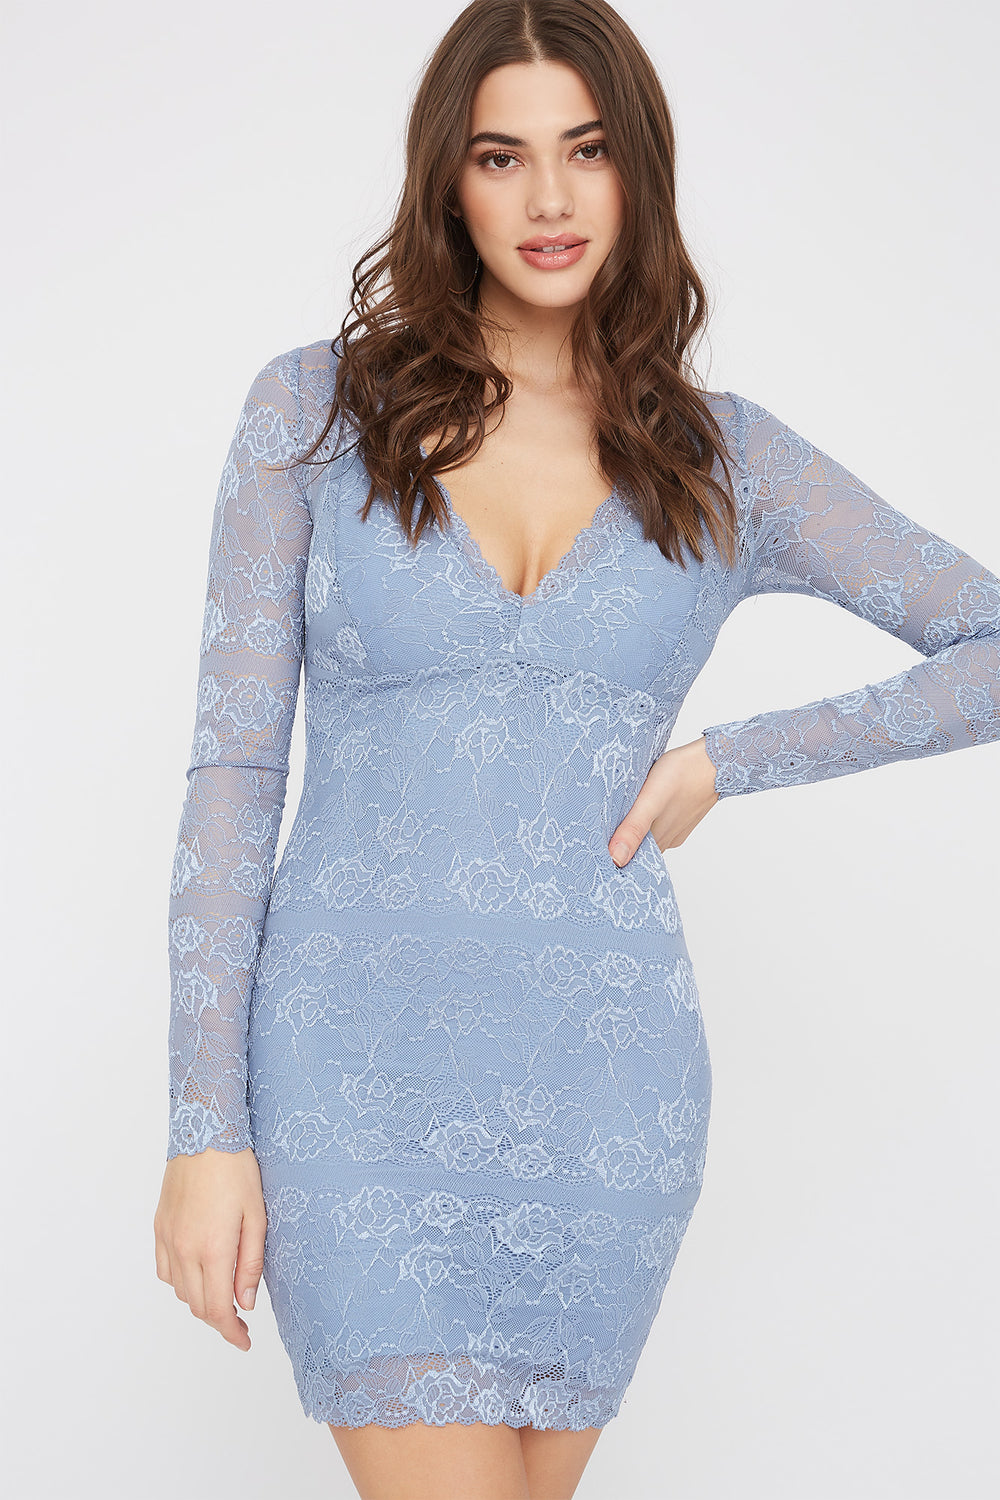 Lace Long Sleeve V-Neck Mini Dress Grey Blue